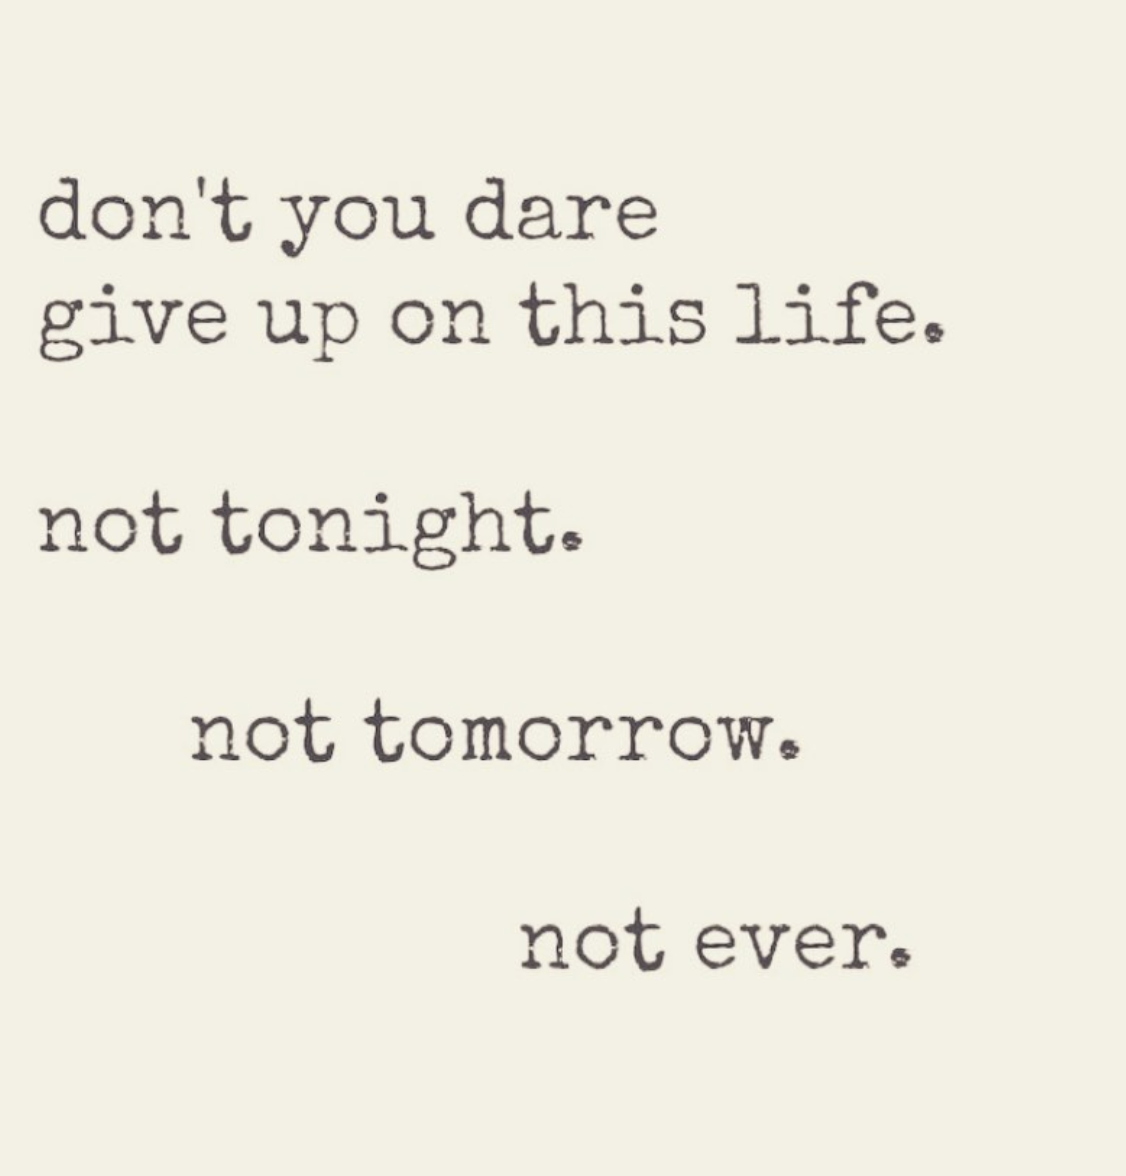 [Image] Don't you dare give up on this life. Not tonight. Not tomorrow. Not ever.